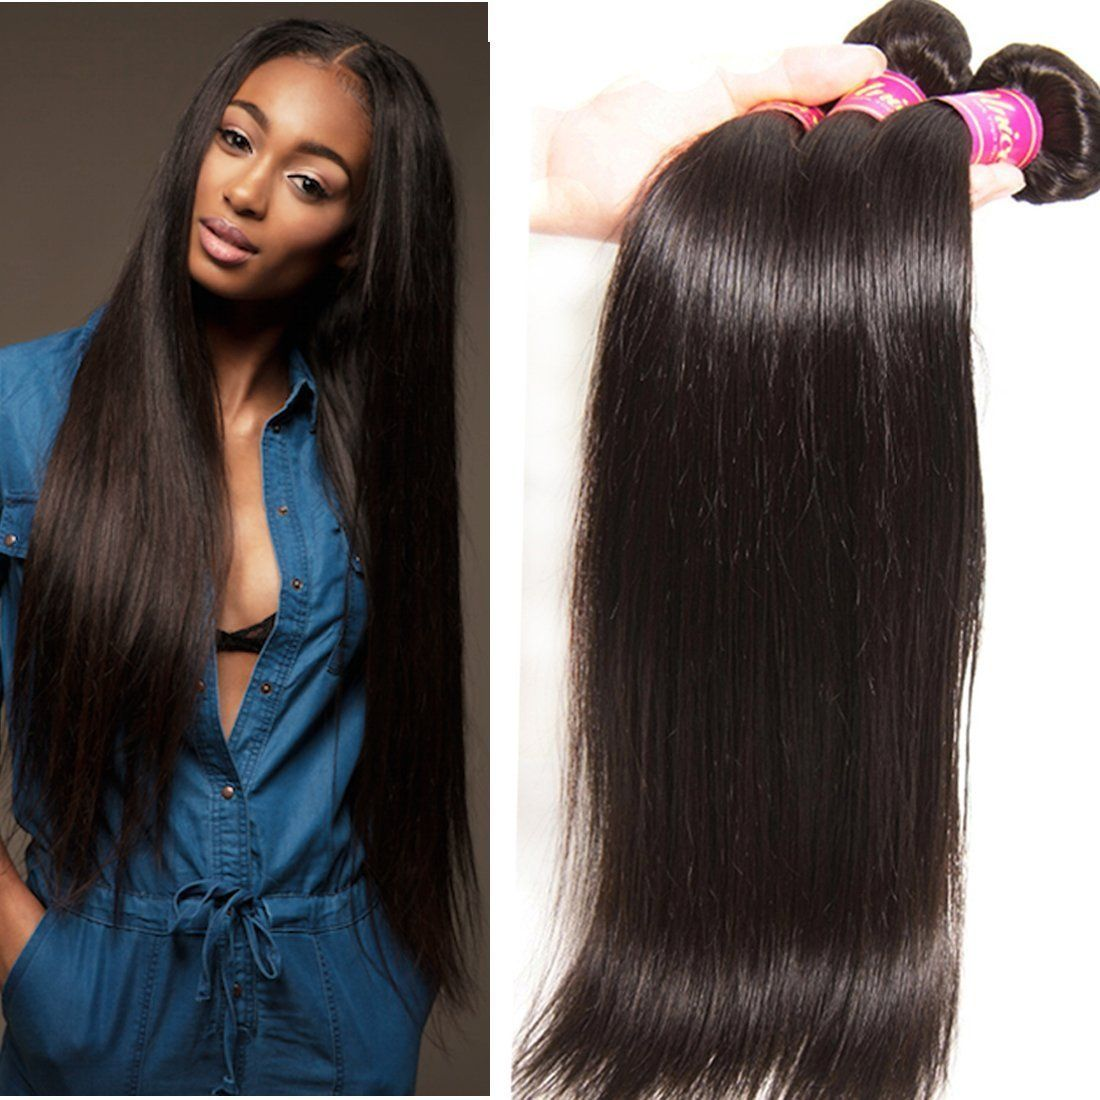 Unice hair natural color 16 18 20inch brazilian straight hair 3 unice hair natural color 16 18 20inch brazilian straight hair 3 bundles 100 unprocessed brazilian human hair colorweave extensionsnatural pmusecretfo Images